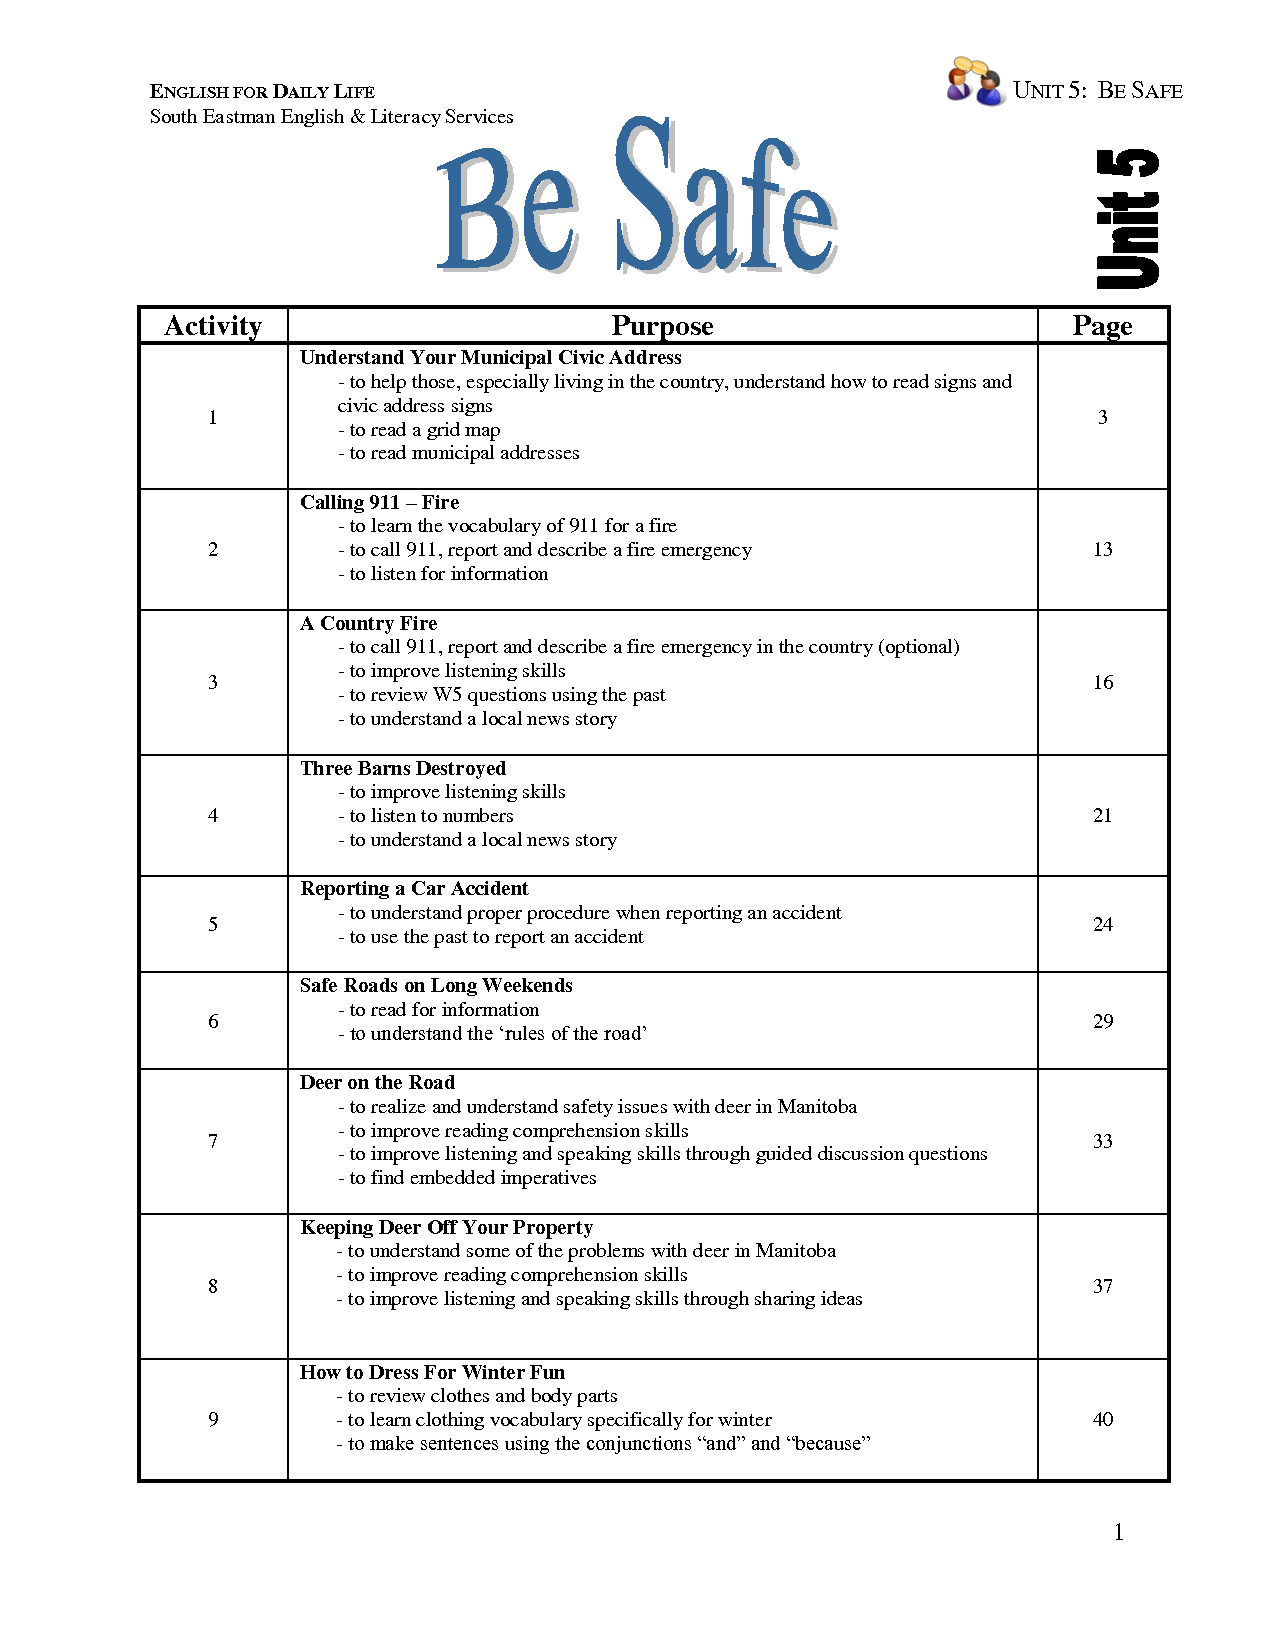 Label Body Parts Worksheet 21 Awesome Label The Parts Of The Body Worksheet For Kids Body